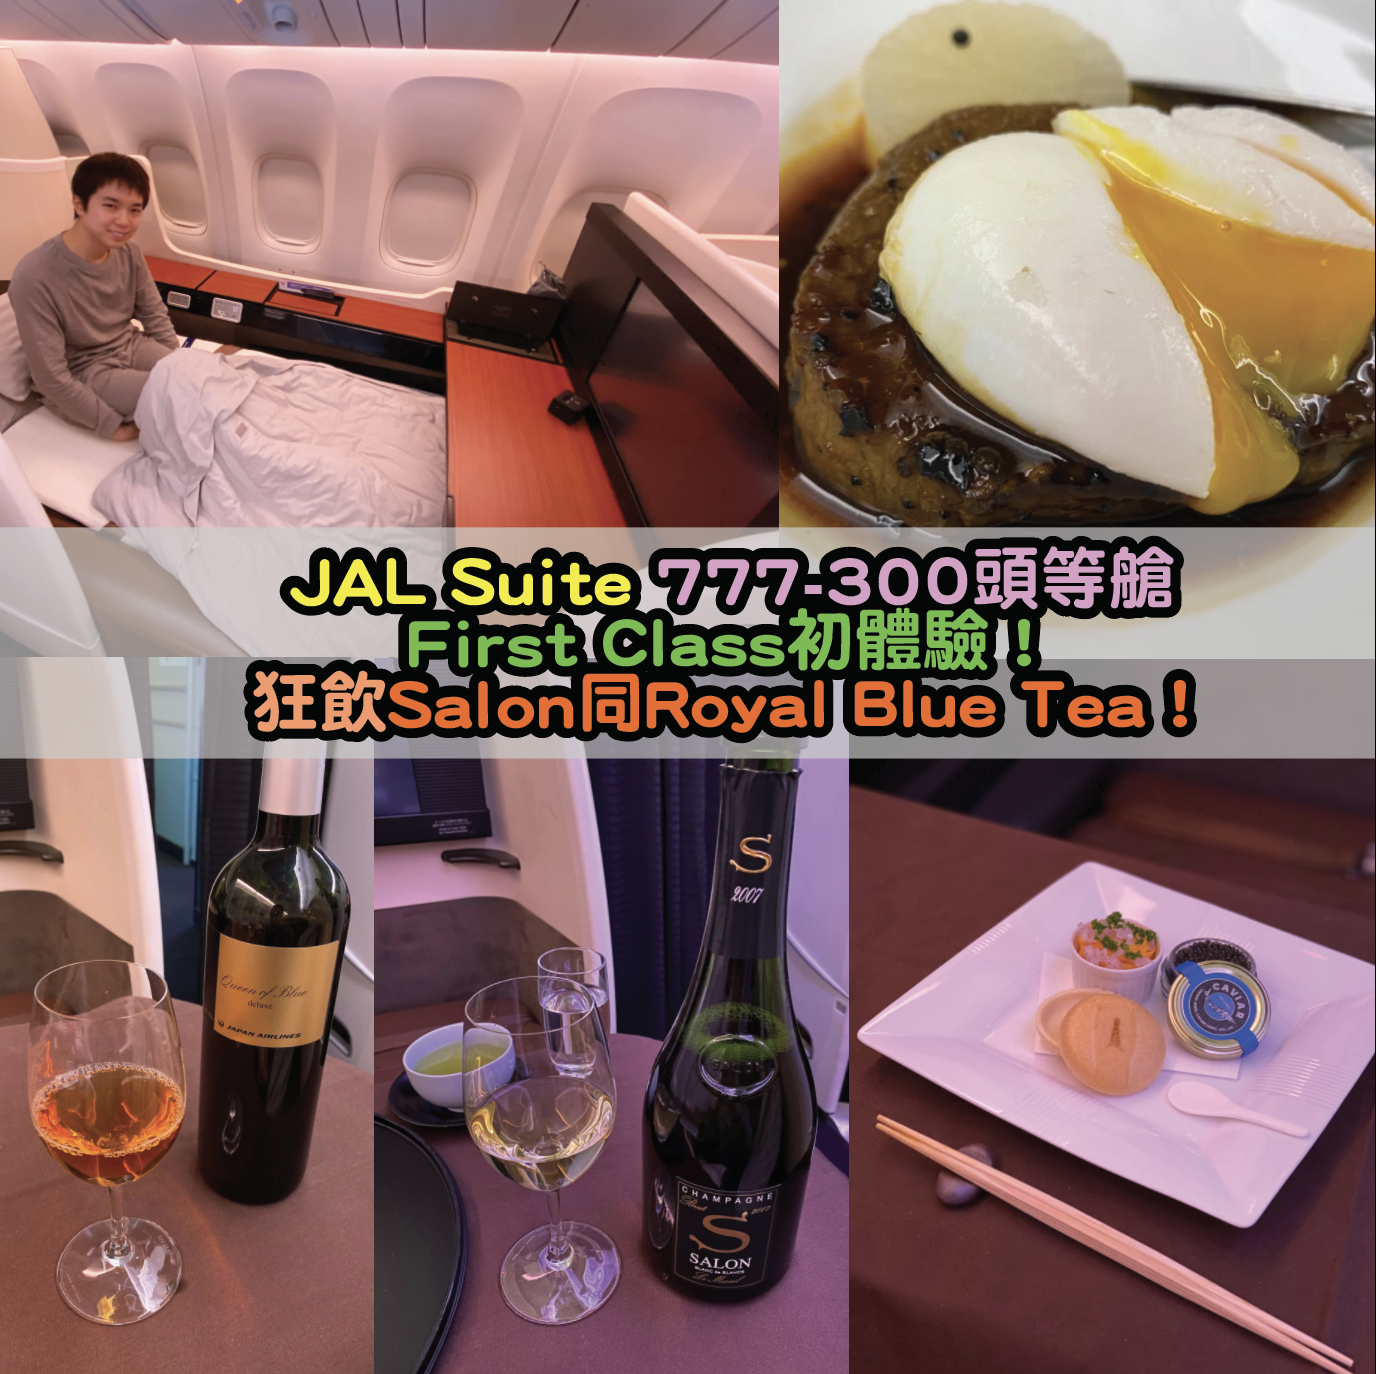 日本航空 Japan Airline JAL Suite 777-300頭等艙First Class初體驗!狂飲Salon同Royal Blue Tea!